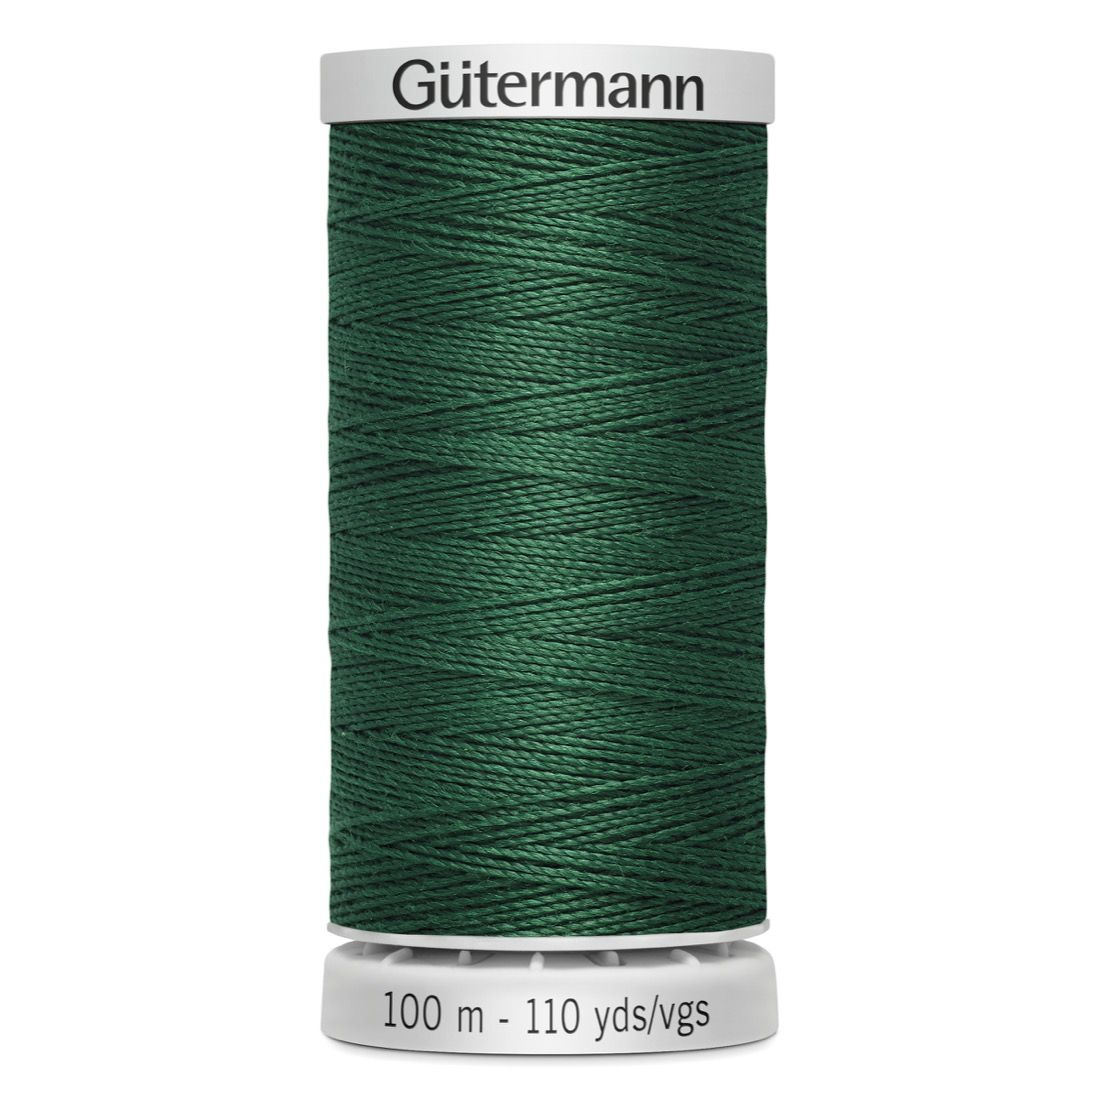 Gutermann Extra Strong Upholstery Thread - 100m - 340